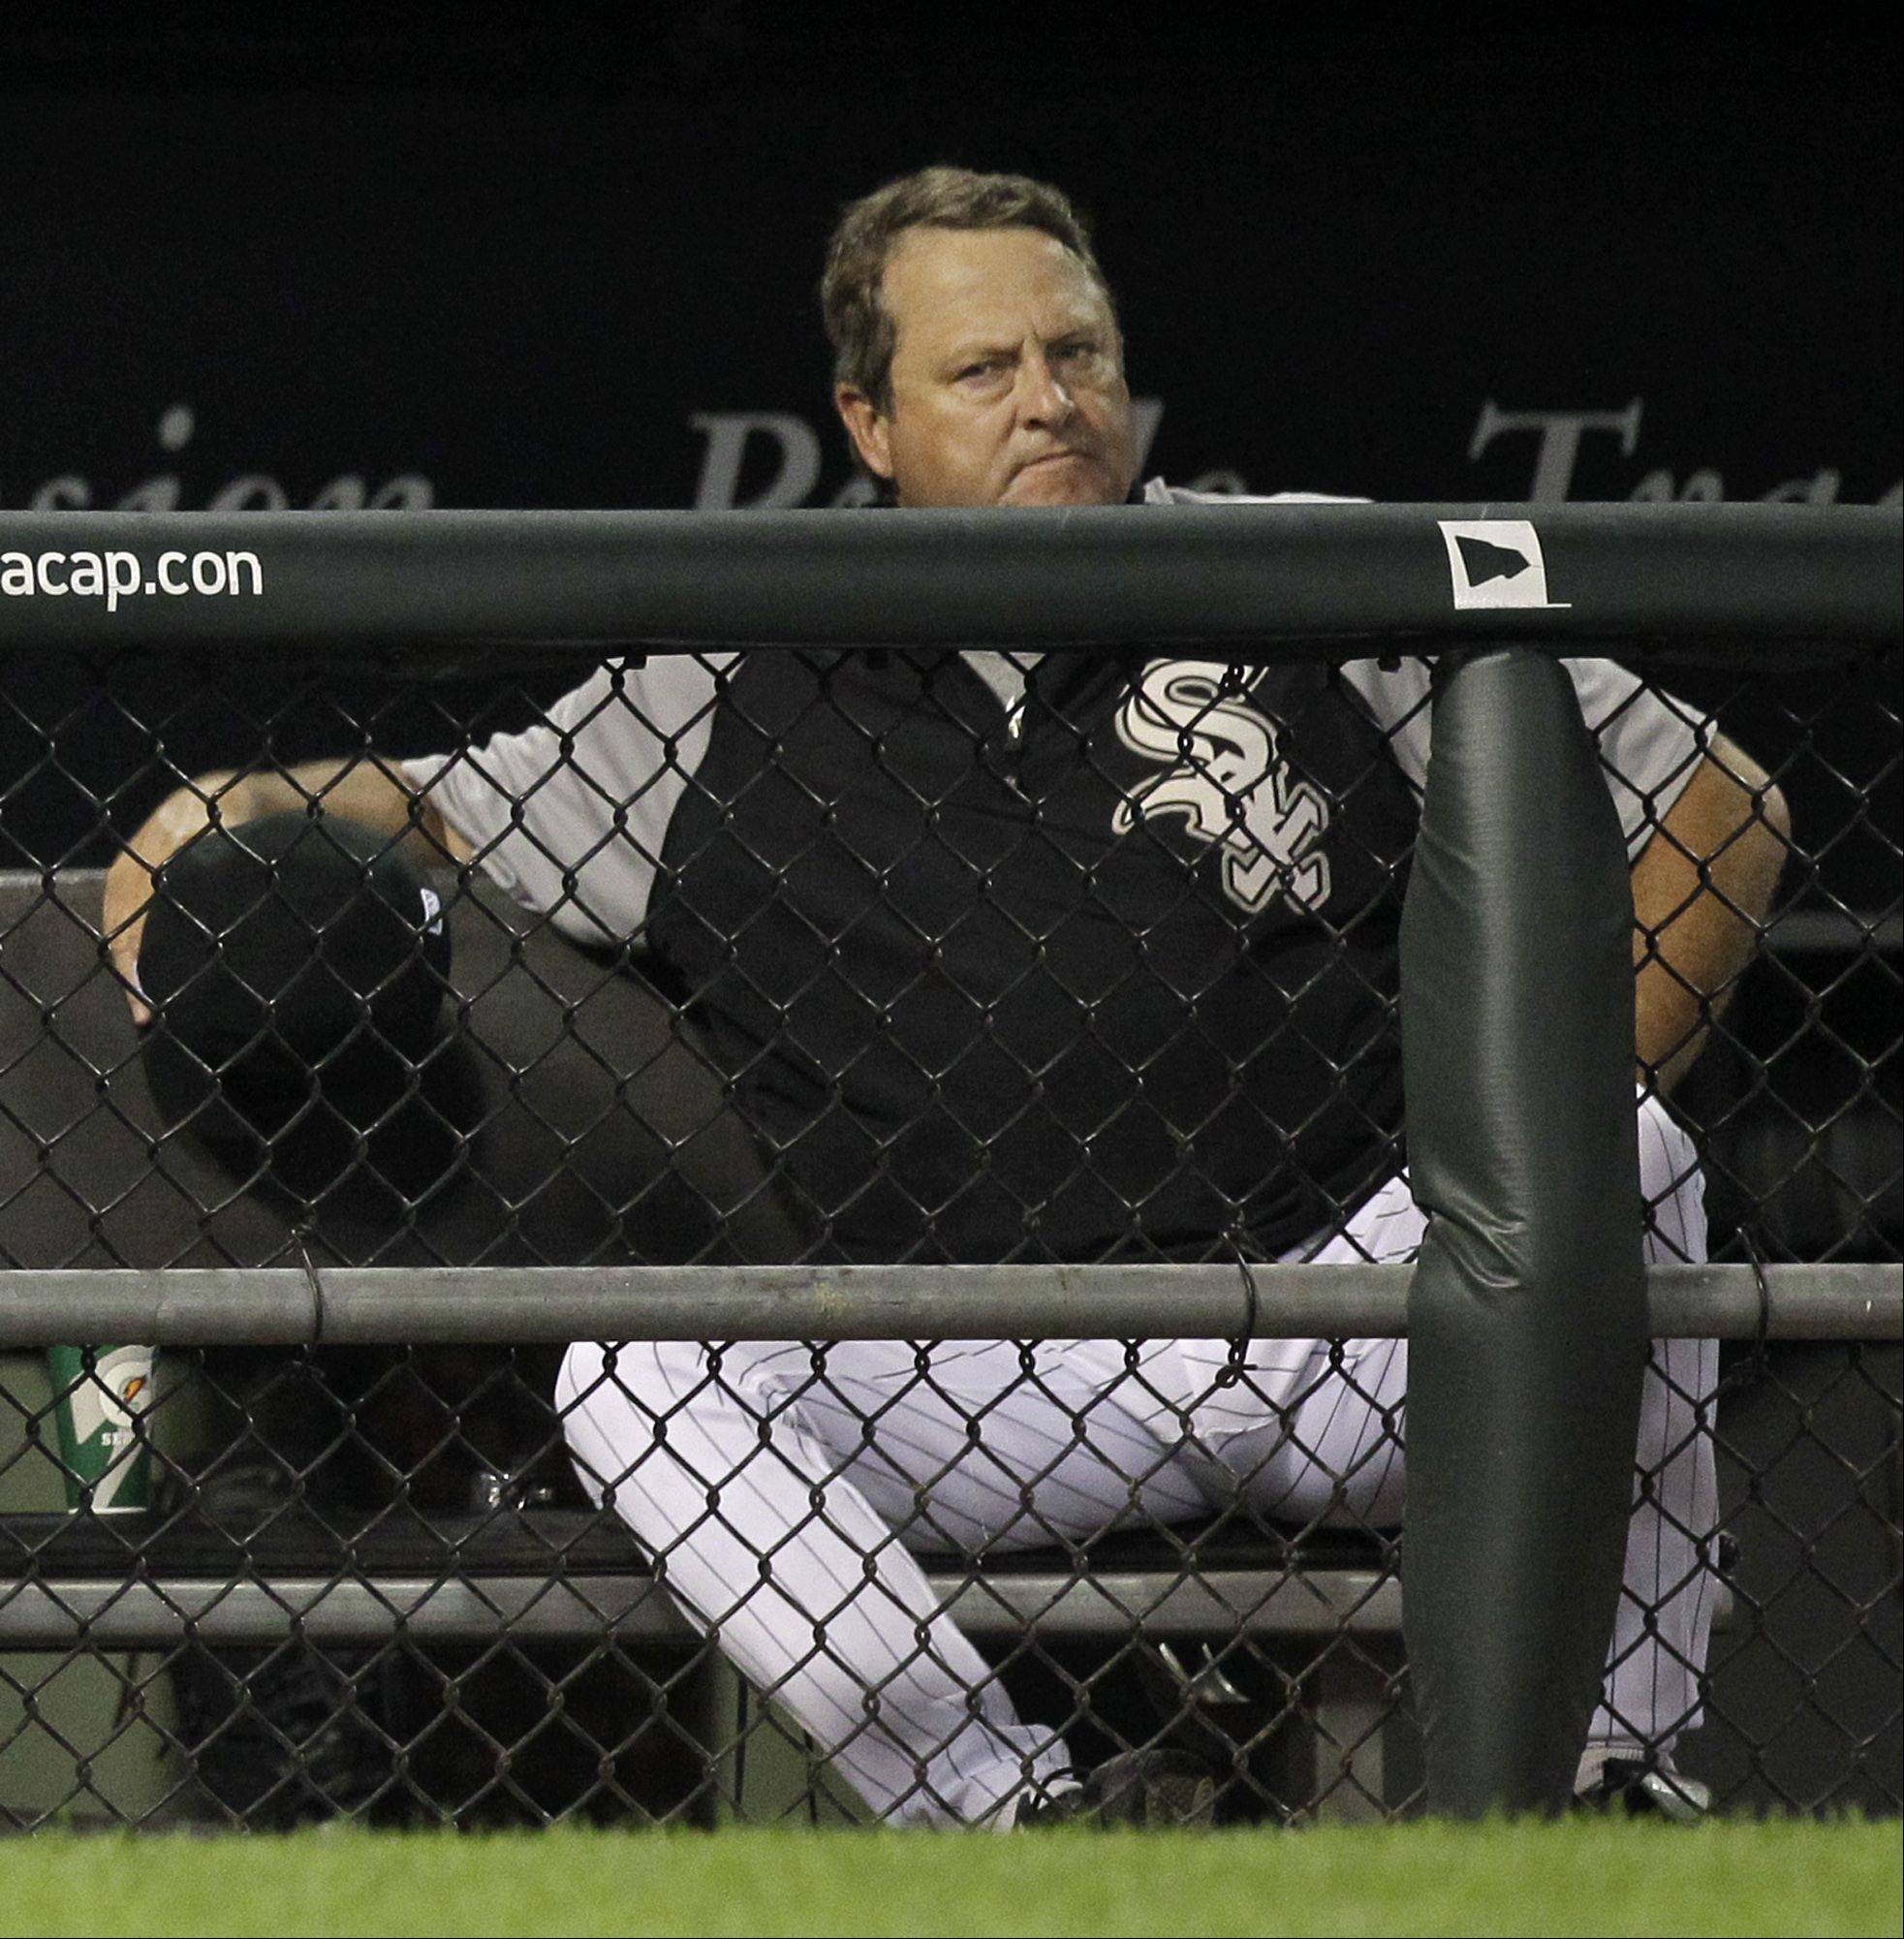 White Sox pitching coach Don Cooper has signed a multiyear deal to stay with the club. First base coach Harold Baines also got a multi-year deal, and Cooper will serve as interim manager for the final two games of the season.